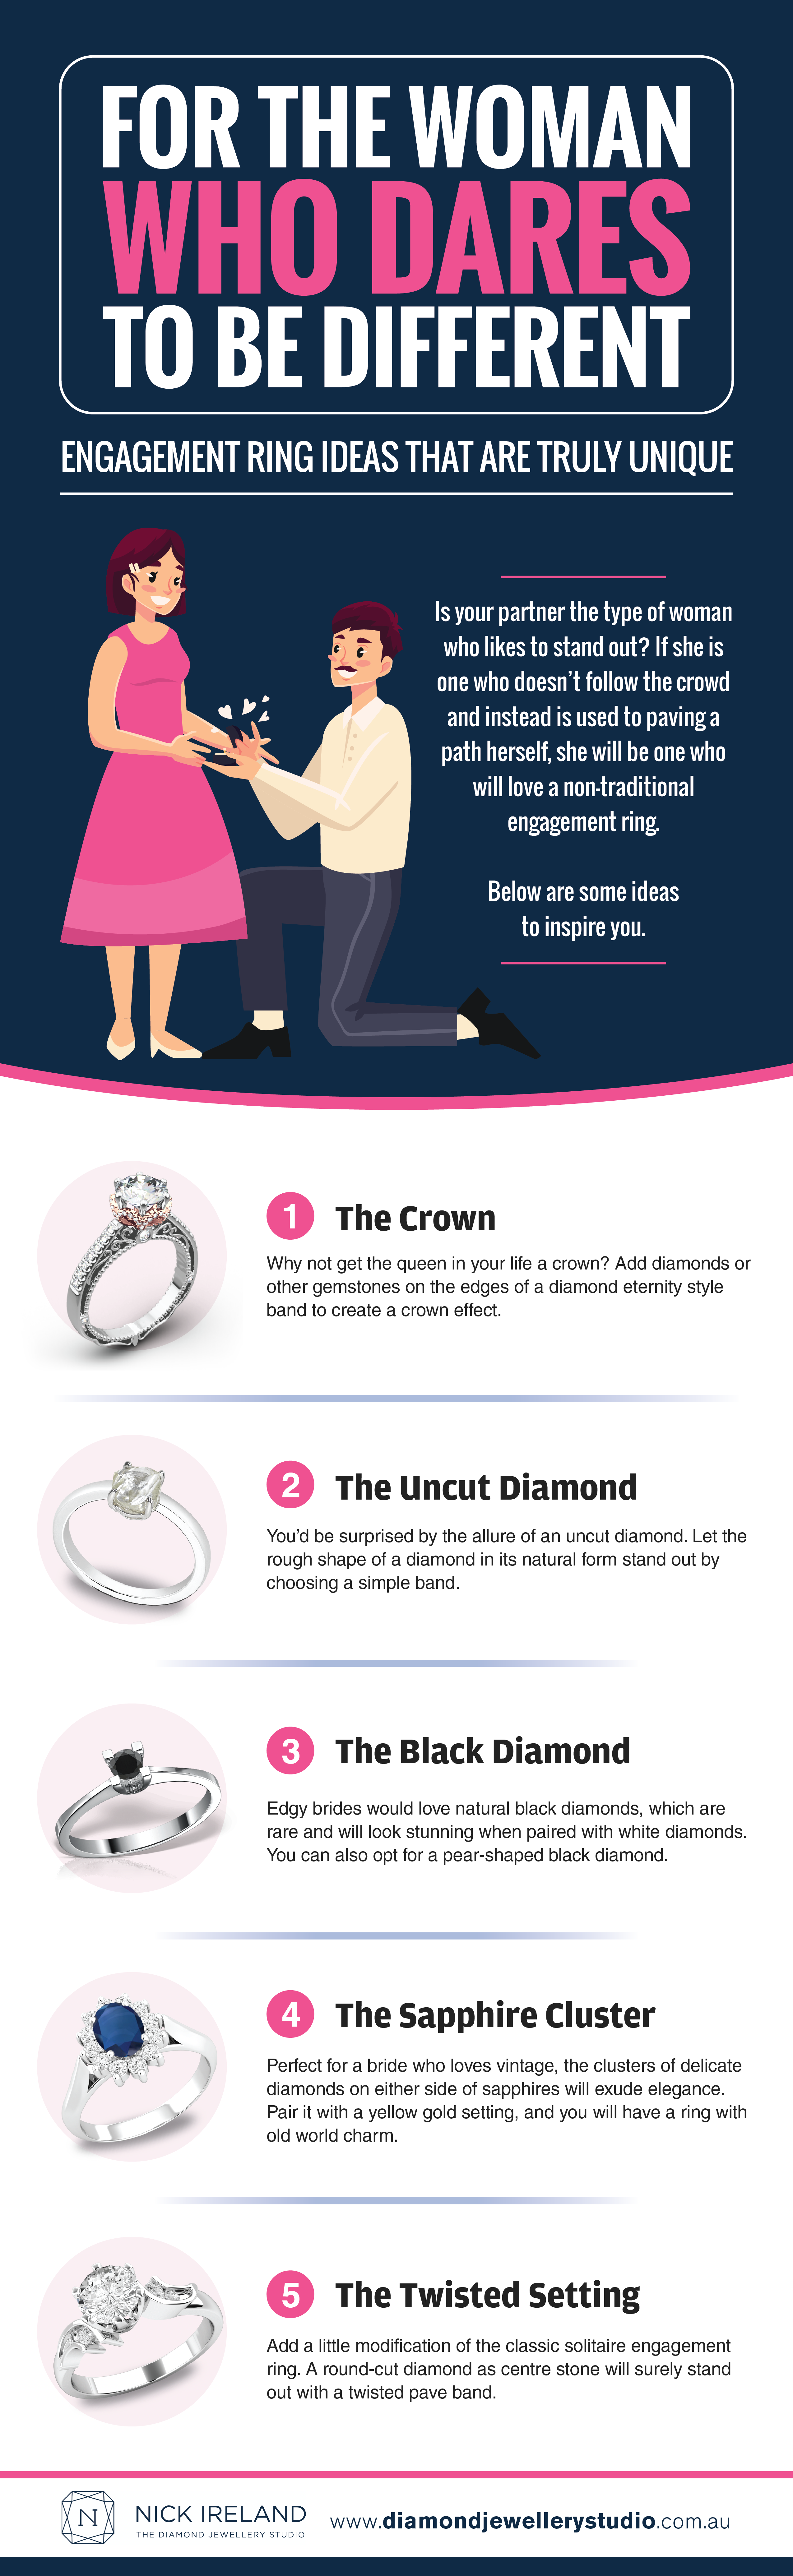 Get Inspired With These Unique Engagement Ring Ideas